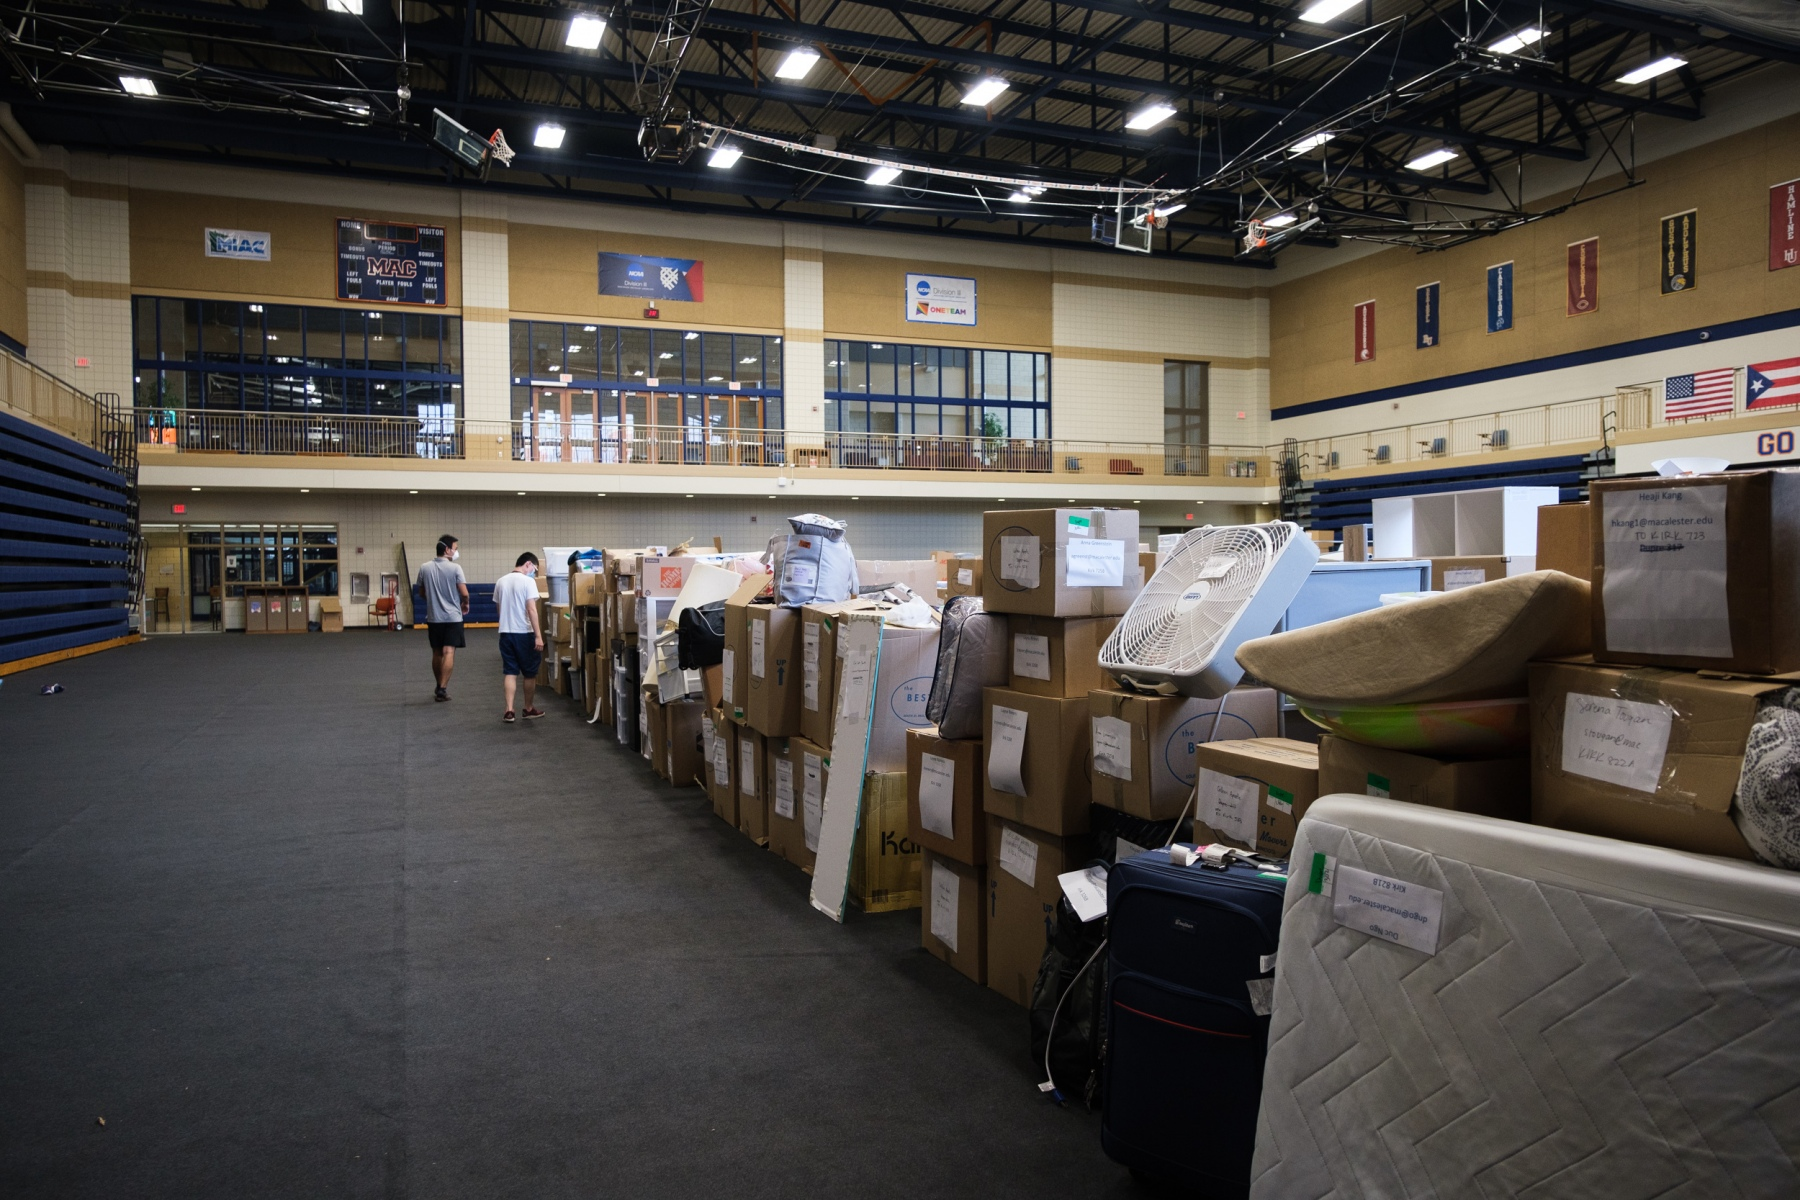 Students search for their belongings in the Leonard Center, where the packaged items of hundreds of students are currently stored after being removed from their dorm rooms over the summer. August 25, 2020.